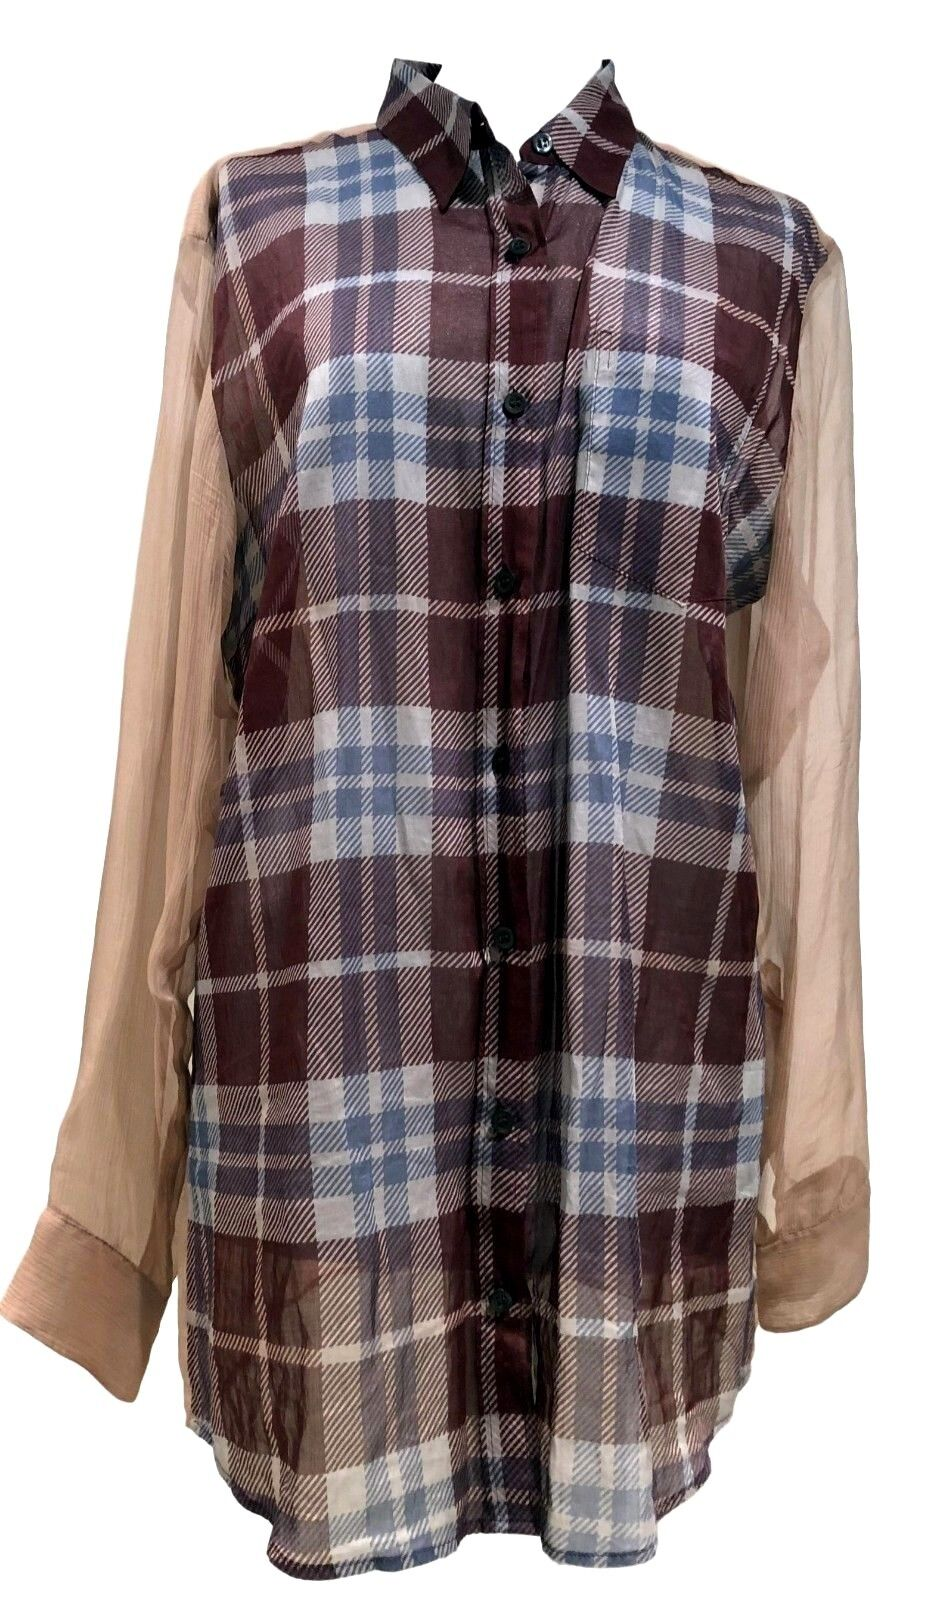 DRIES VAN NOTEN SEMI-SHEER PLAID SHIRT BLOUSE, 40,